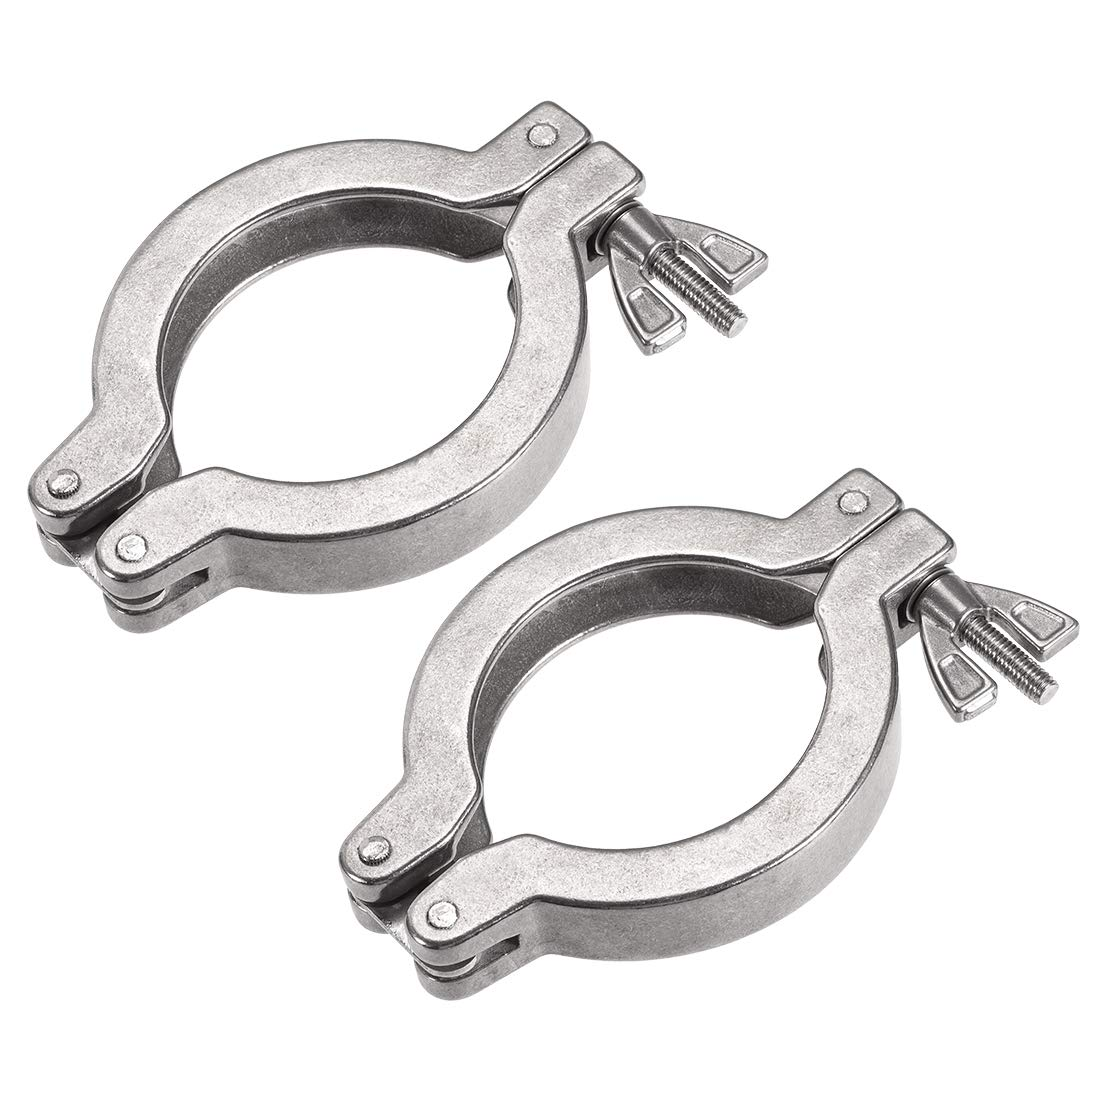 uxcell 2 Pcs Sanitary Tri-Clamp 82mm X 57mm Single Pin Tri Clamp Wing Nut for Ferrule TC